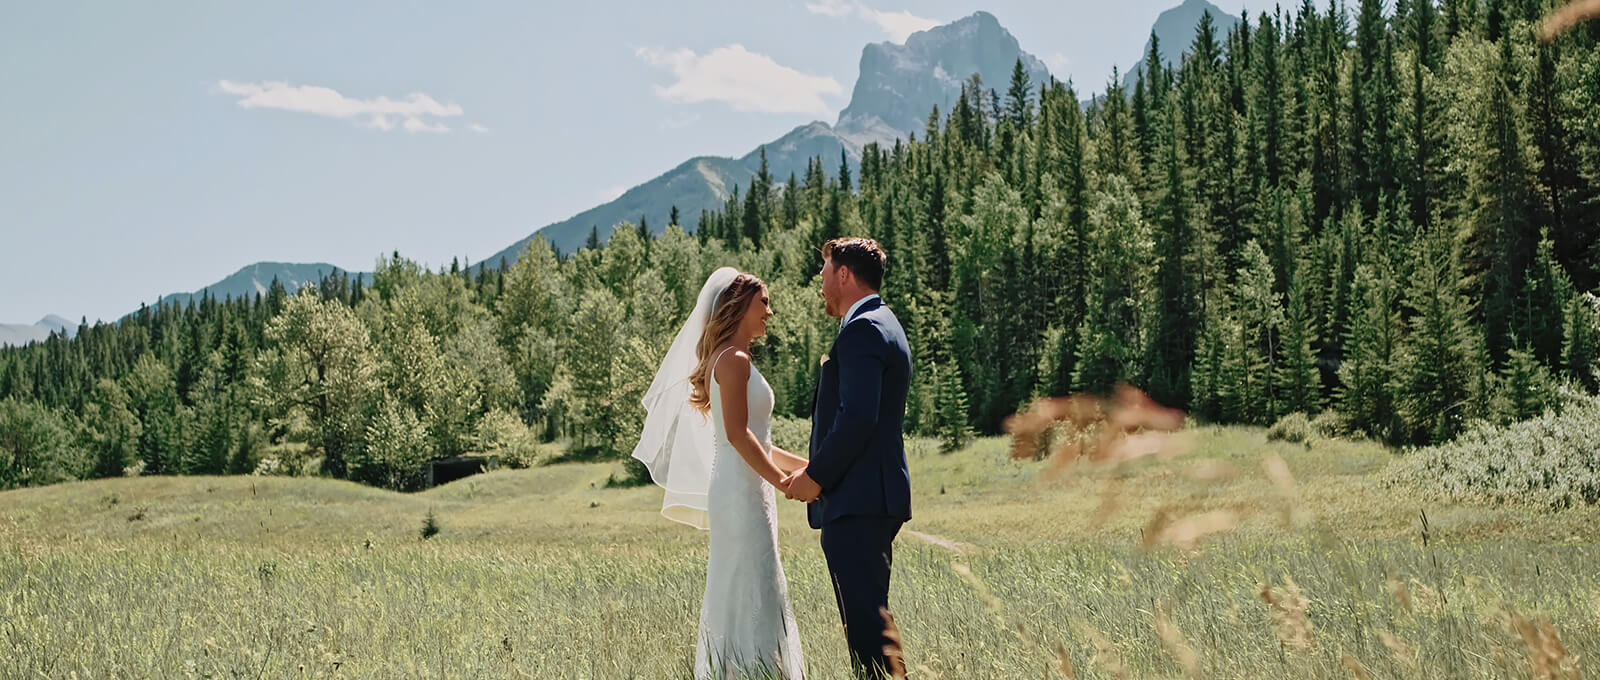 Cara and Riley's wedding video with Canmore wedding videographer